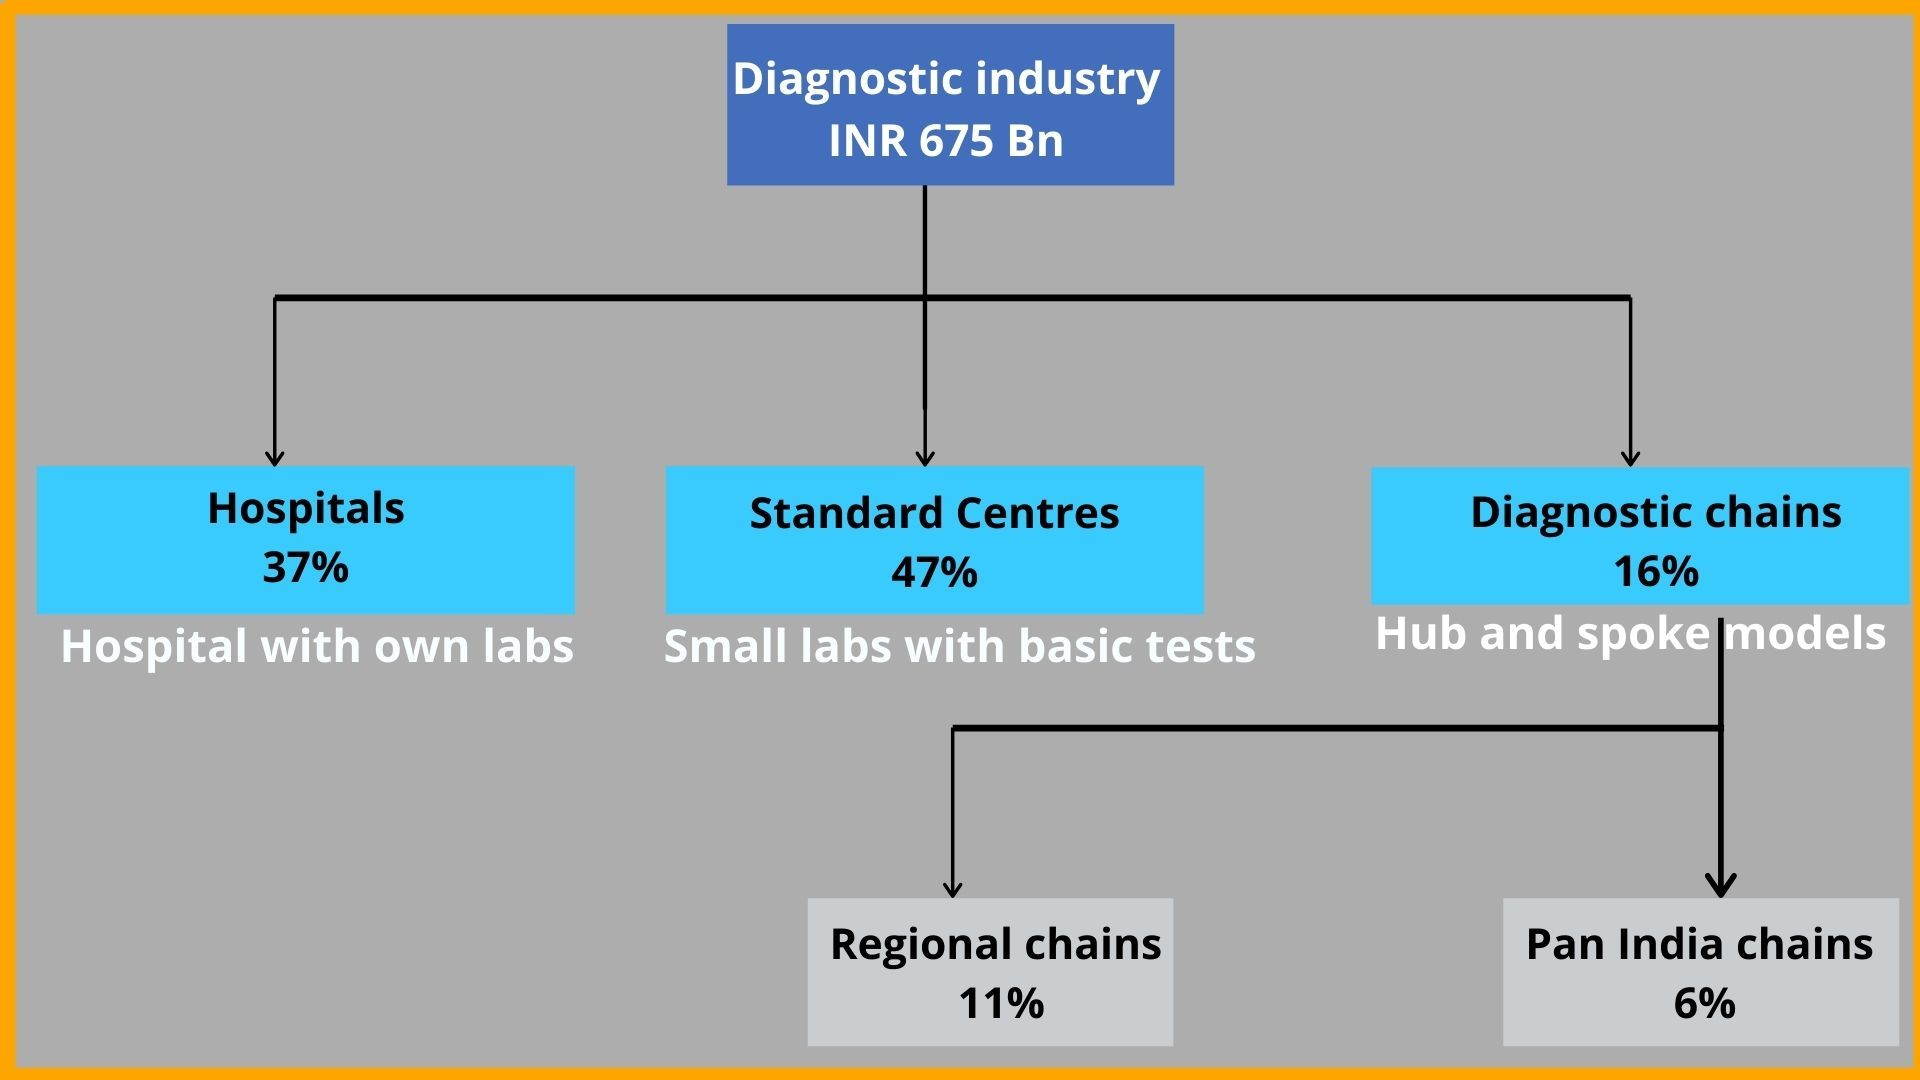 Indian diagnostic industry – Market structure